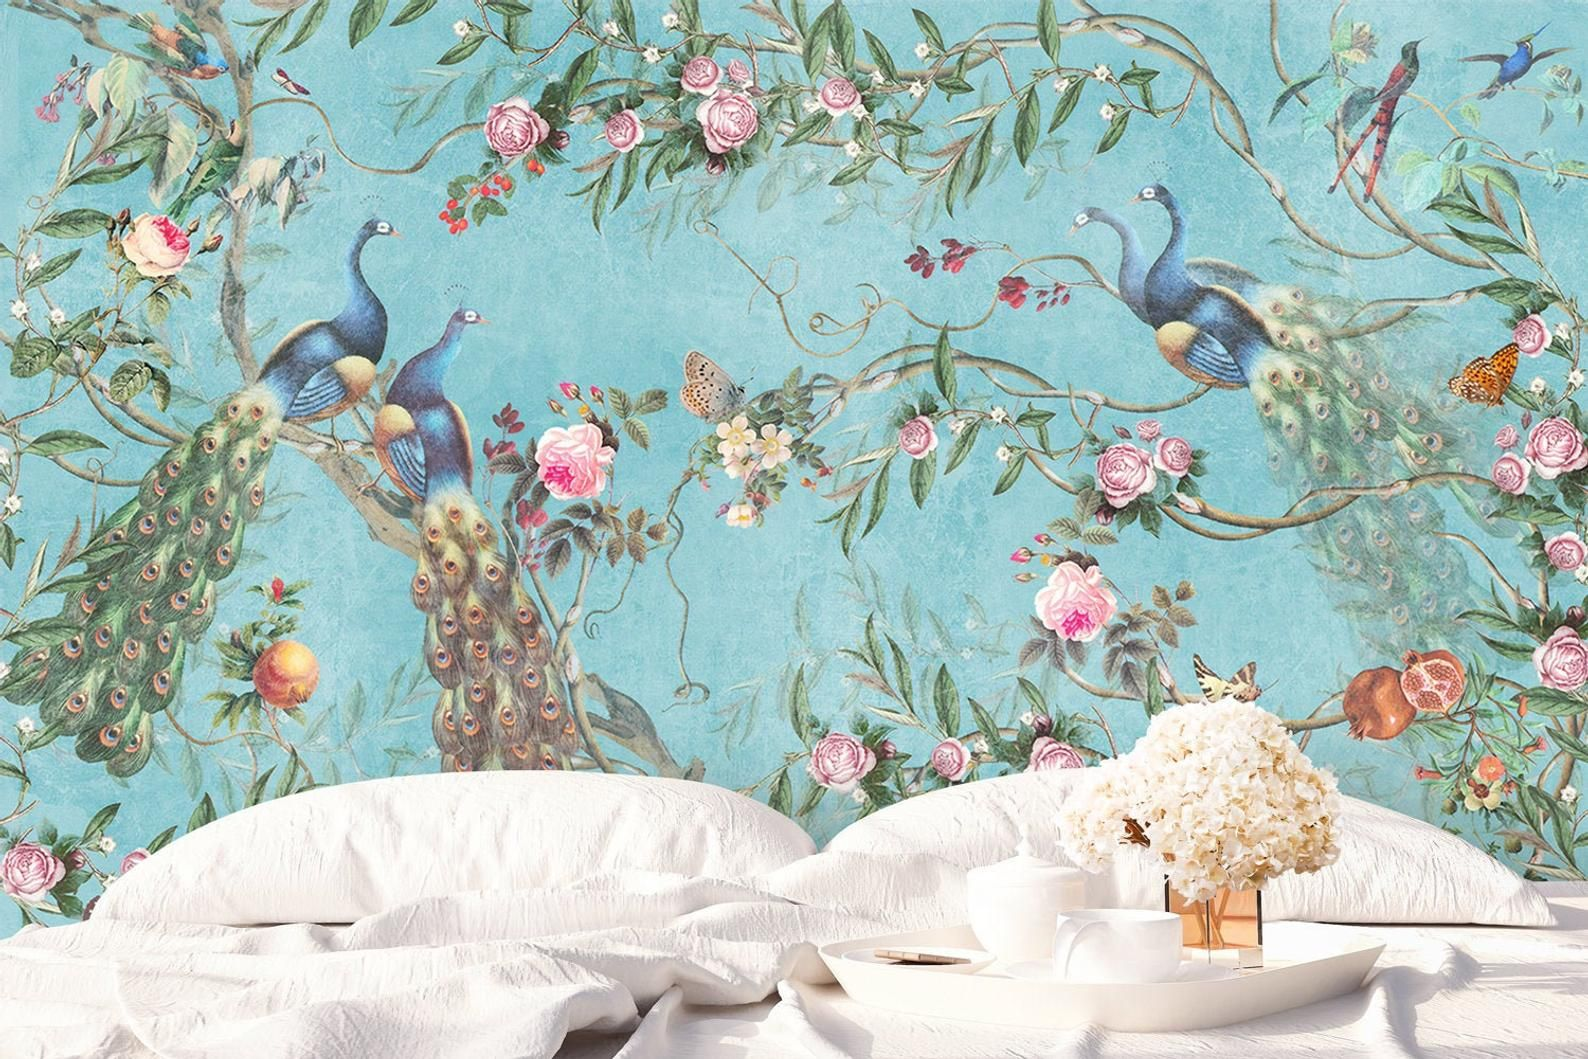 Floral Wallpaper Self Adhesive Peel And Stick Peacock Wall Mural